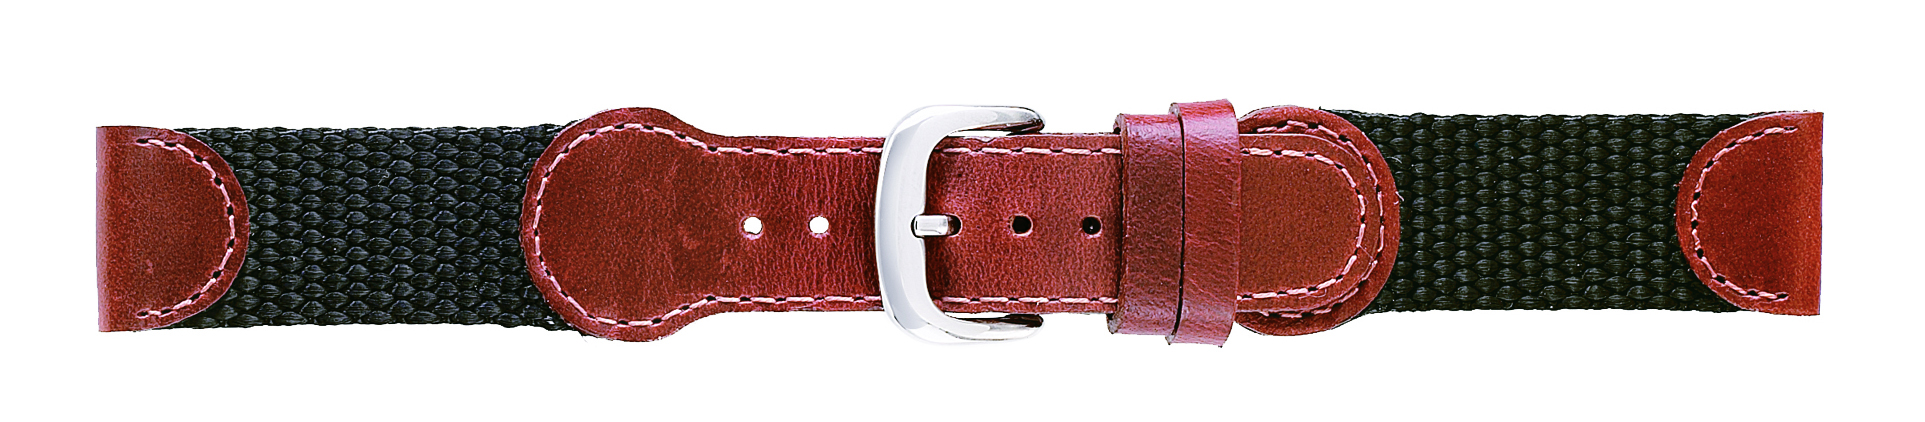 19mm Swiss Army Style Brown Leather & Nylon Strap-0